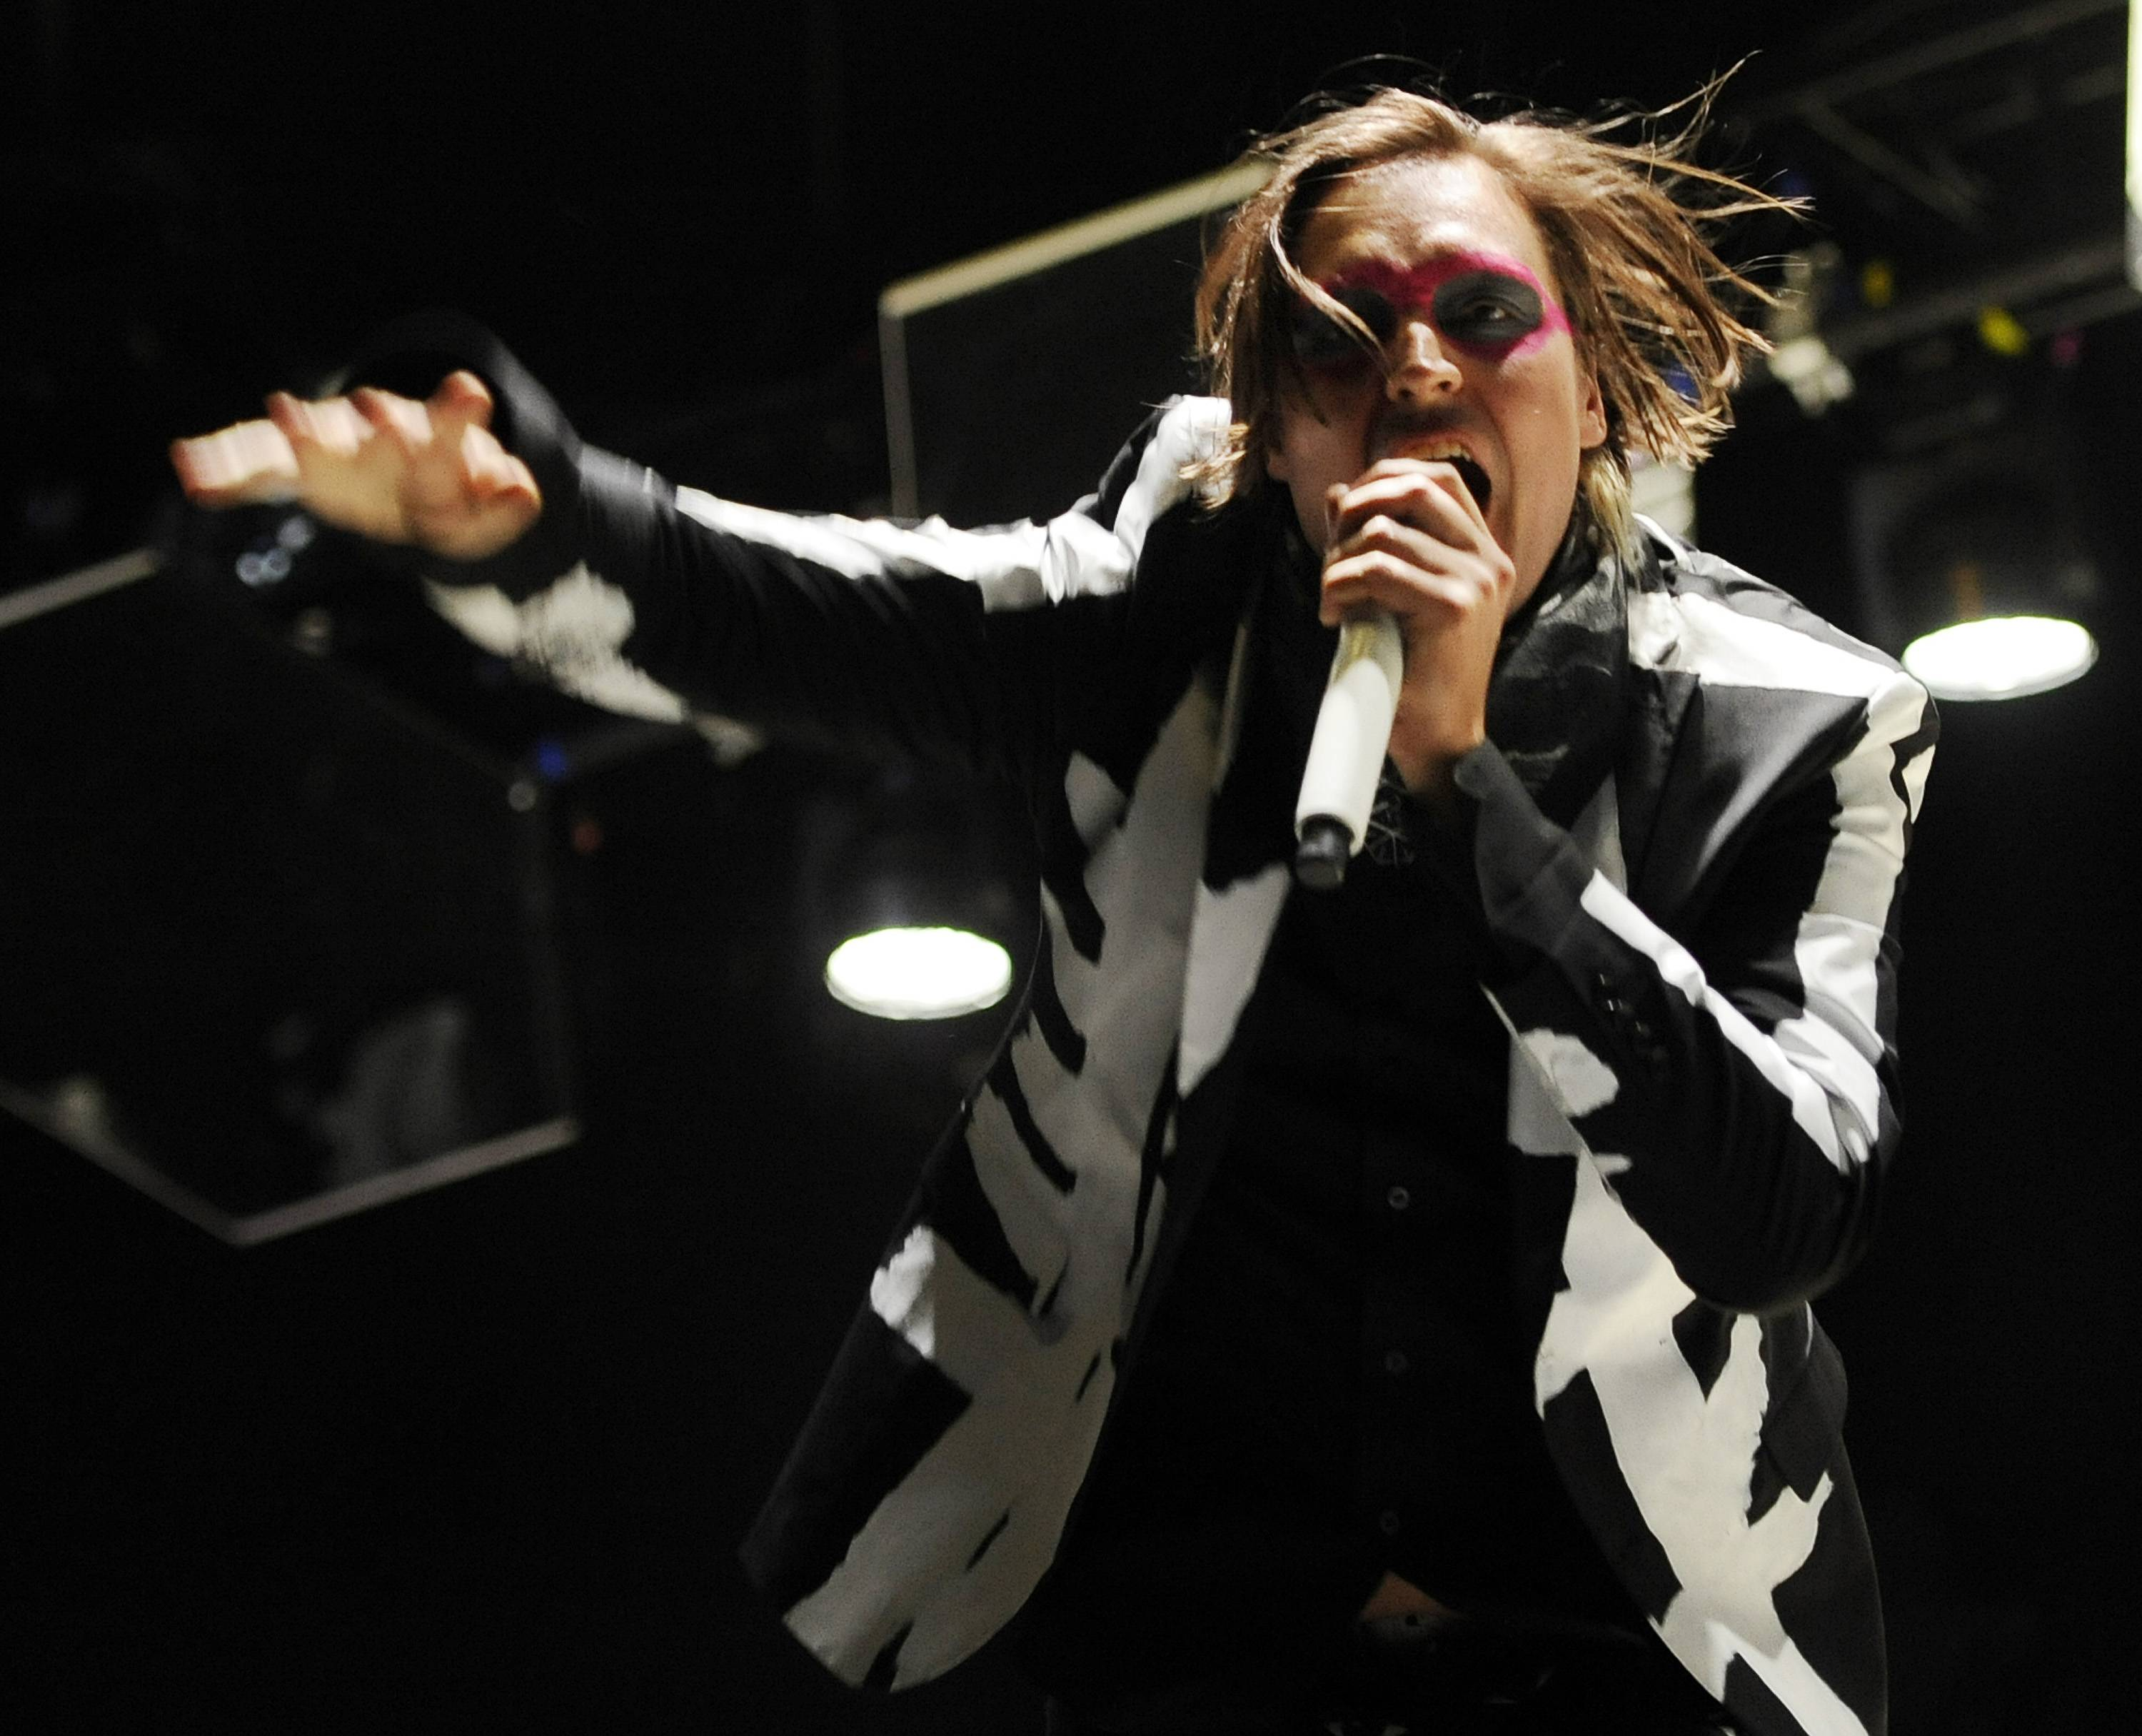 Win Butler of Arcade Fire. Internet radio leader Pandora has come to its first direct licensing deal with artists, a wide-ranging agreement with independent label group Merlin, who represents Arcade Fire, that both said would mean higher payments to artists and more play for them on Pandora stations.